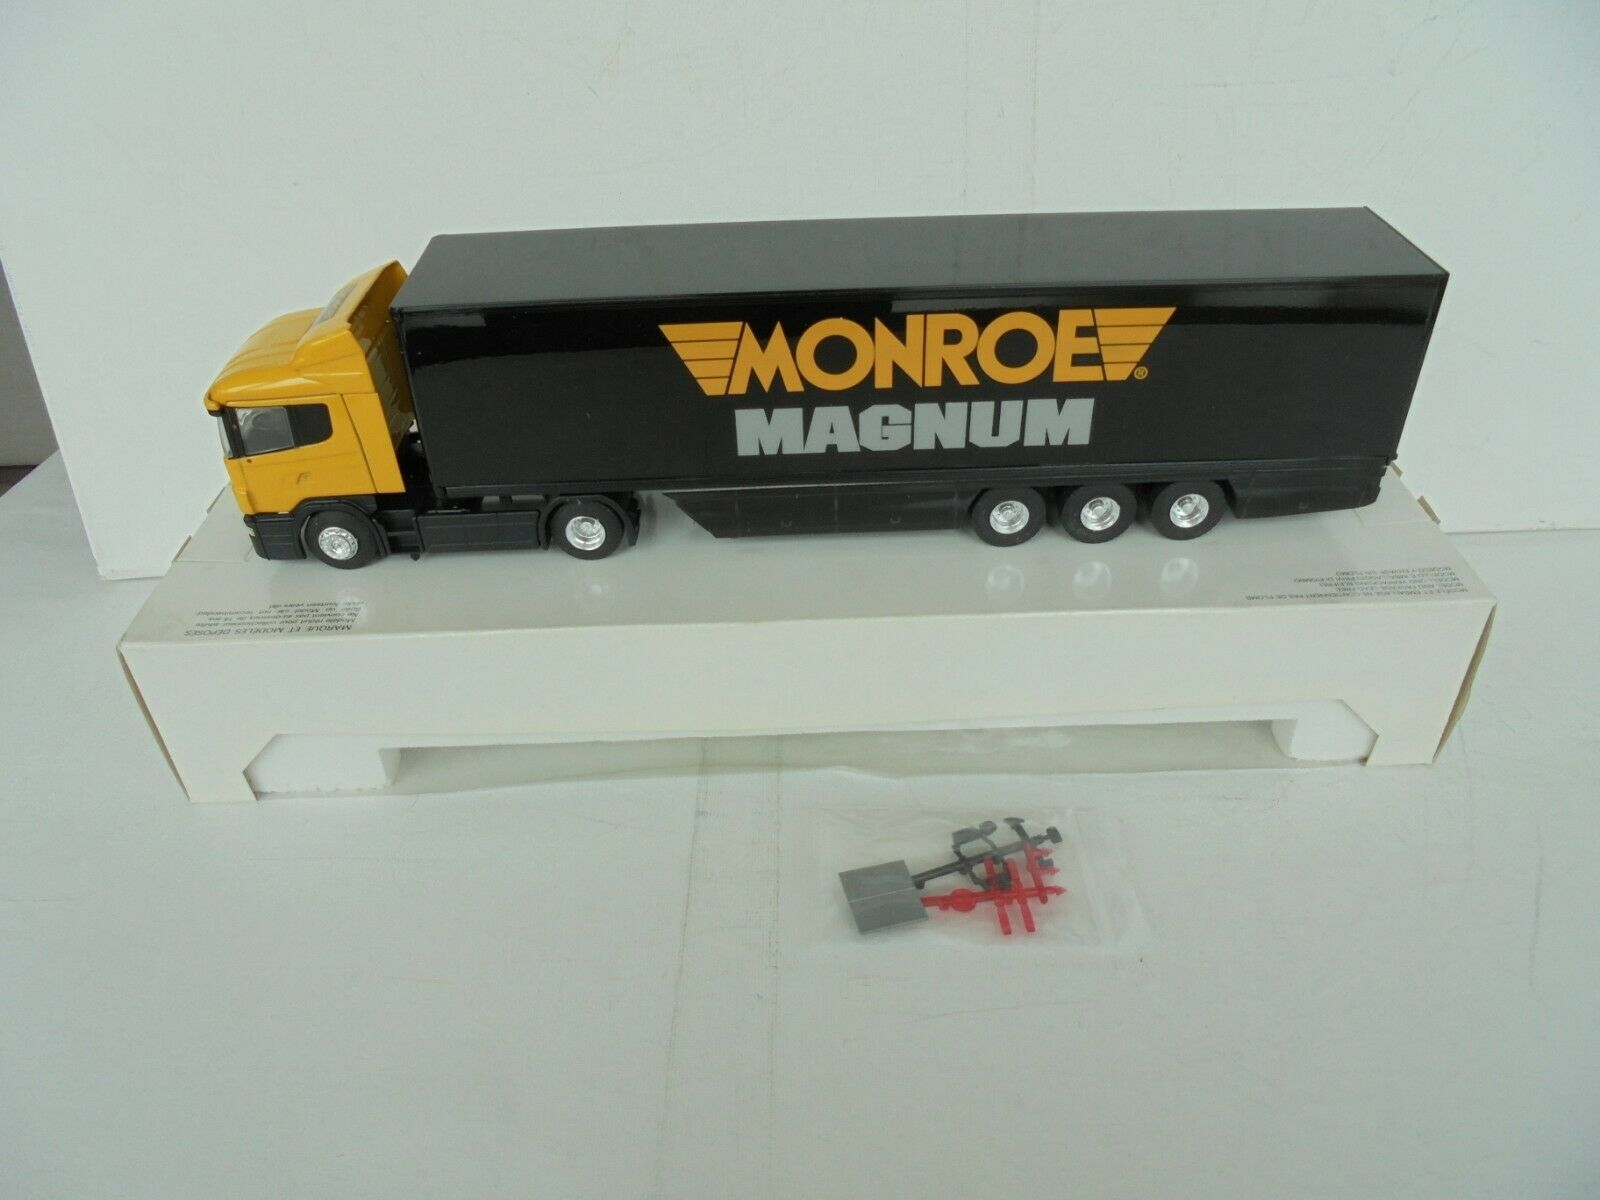 LBS ELIGOR 1 43 SEMI SCANIA 144L 530 MONROE MAGNUM Gelb schwarz 11244 NEW IN BOX